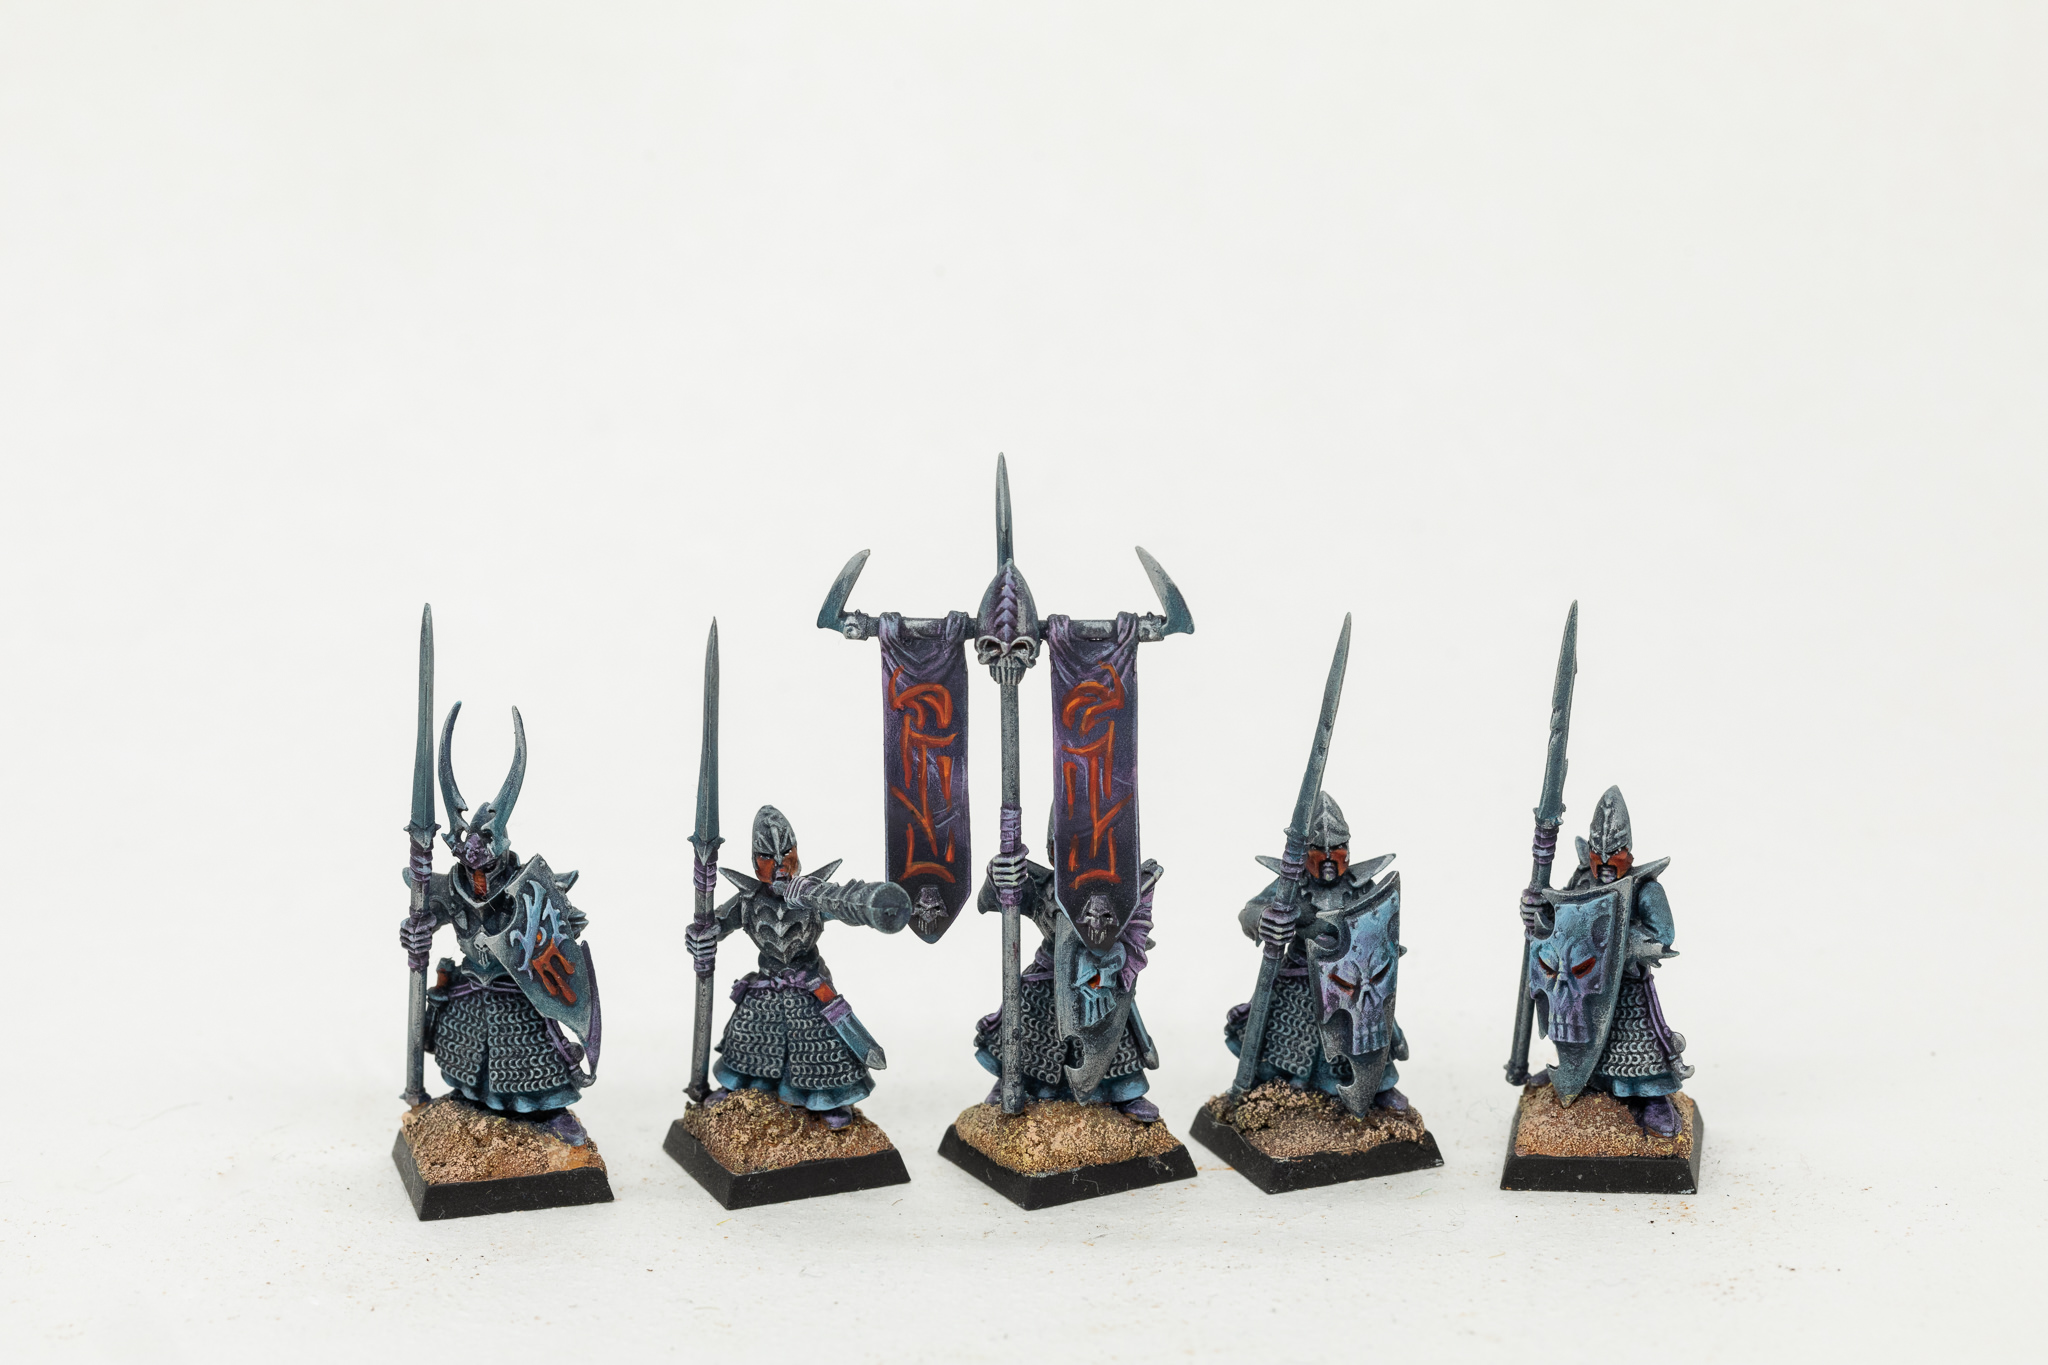 vente-figurines-elfesnoirs0016.jpg